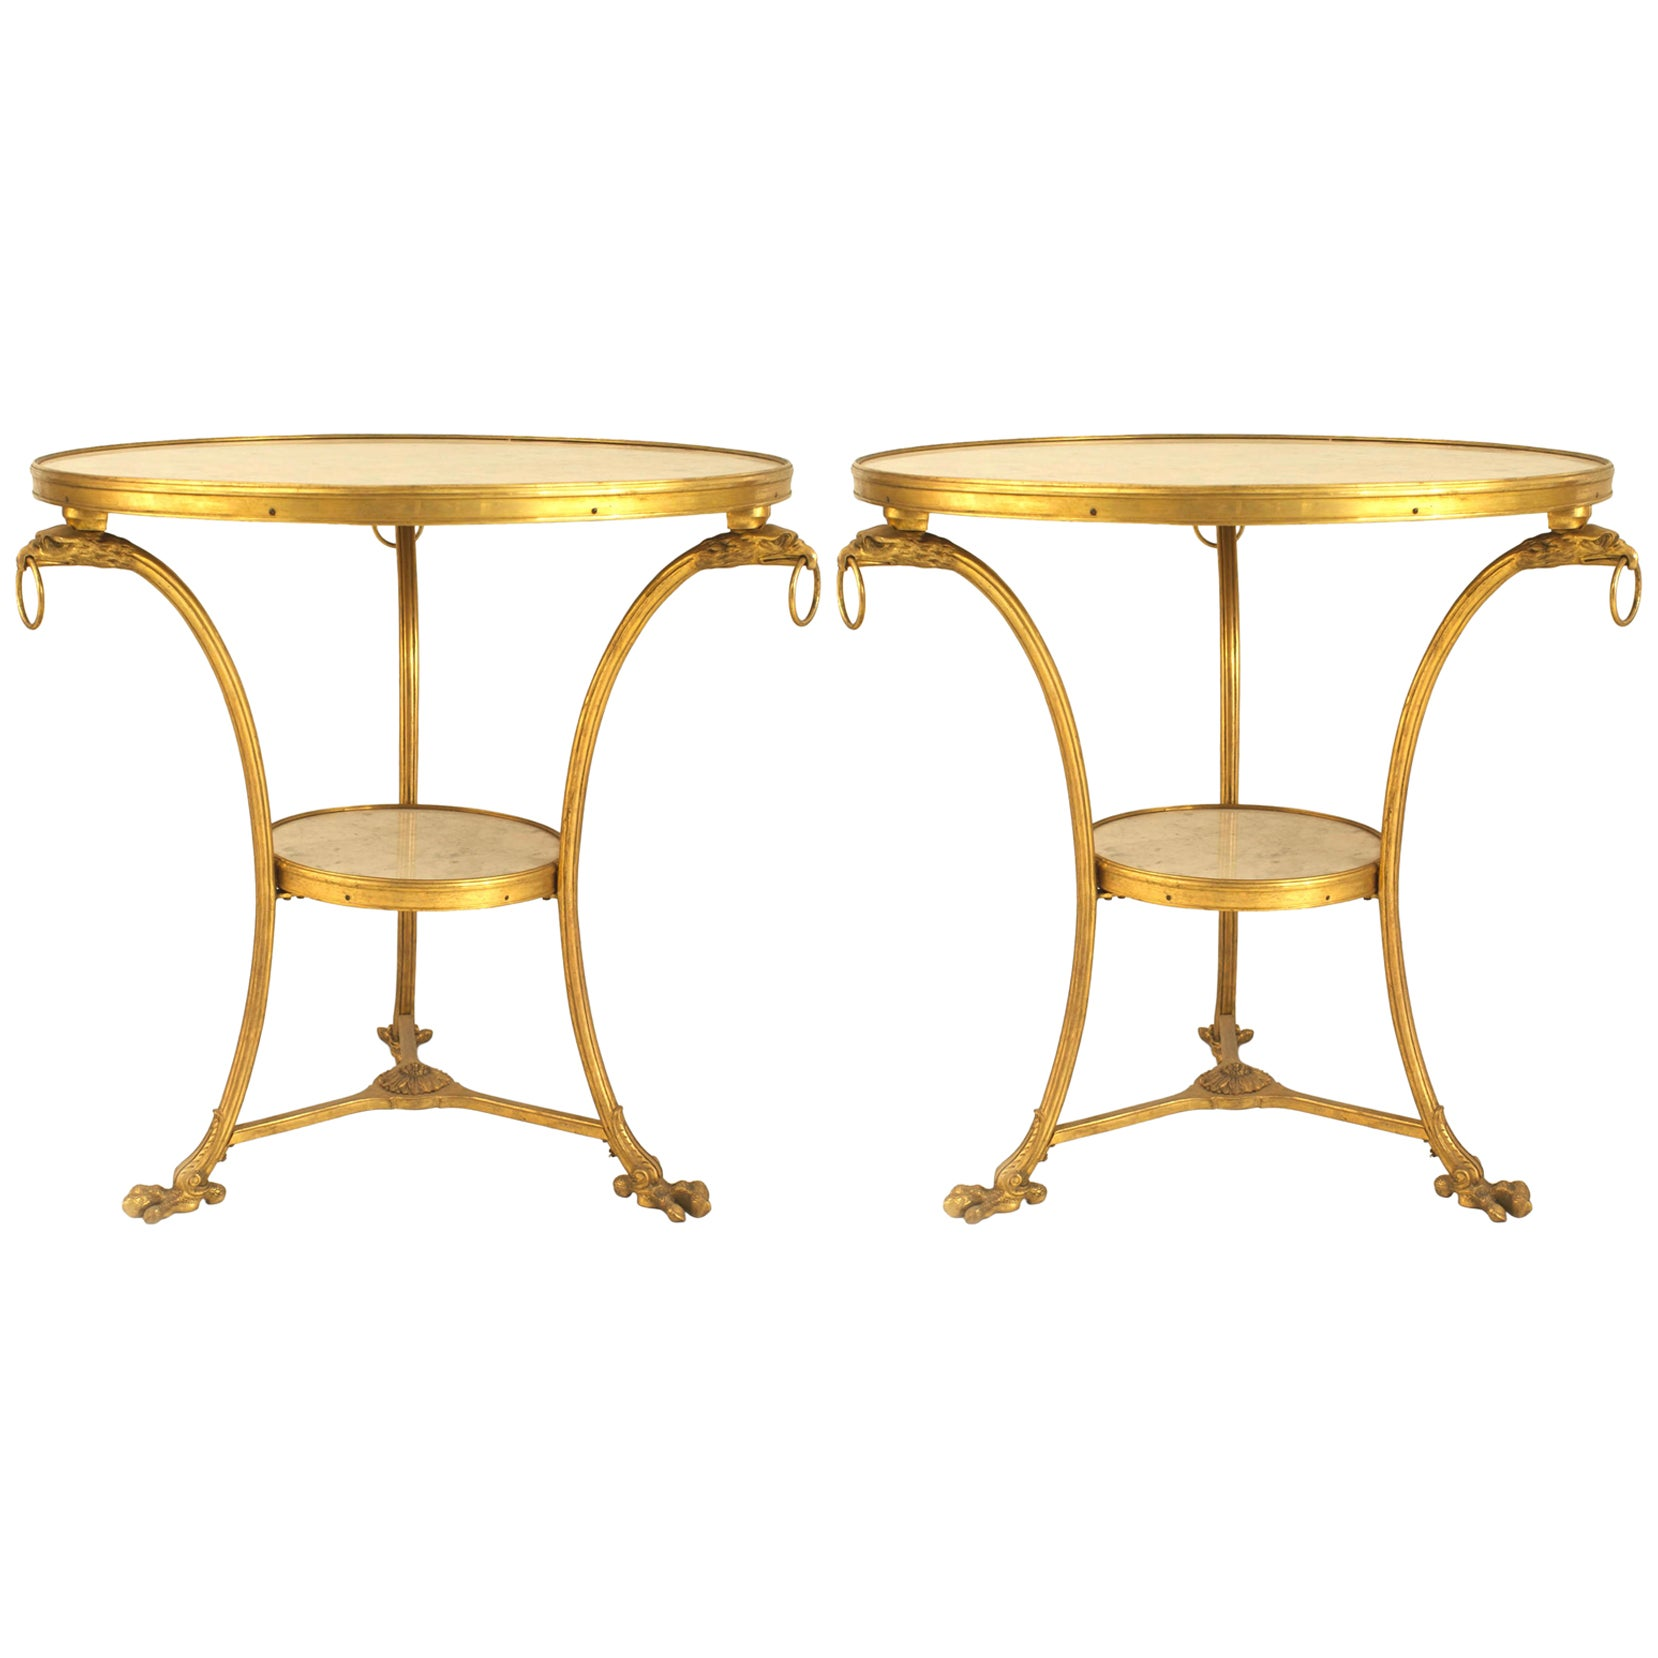 Two French Empire Style Bronze Gueridon End Tables